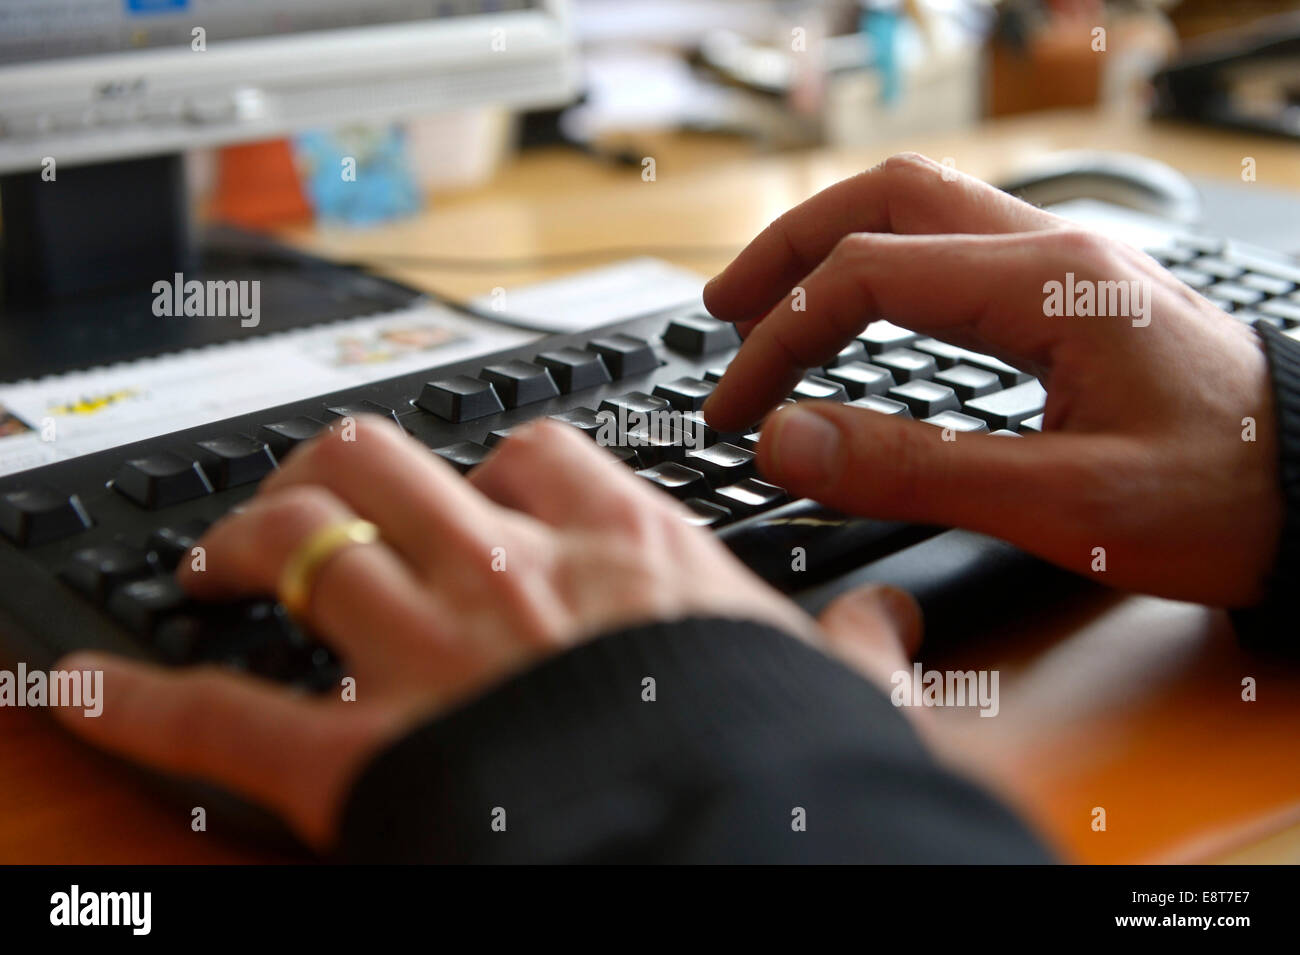 Hands typing on a computer keyboard - Stock Image